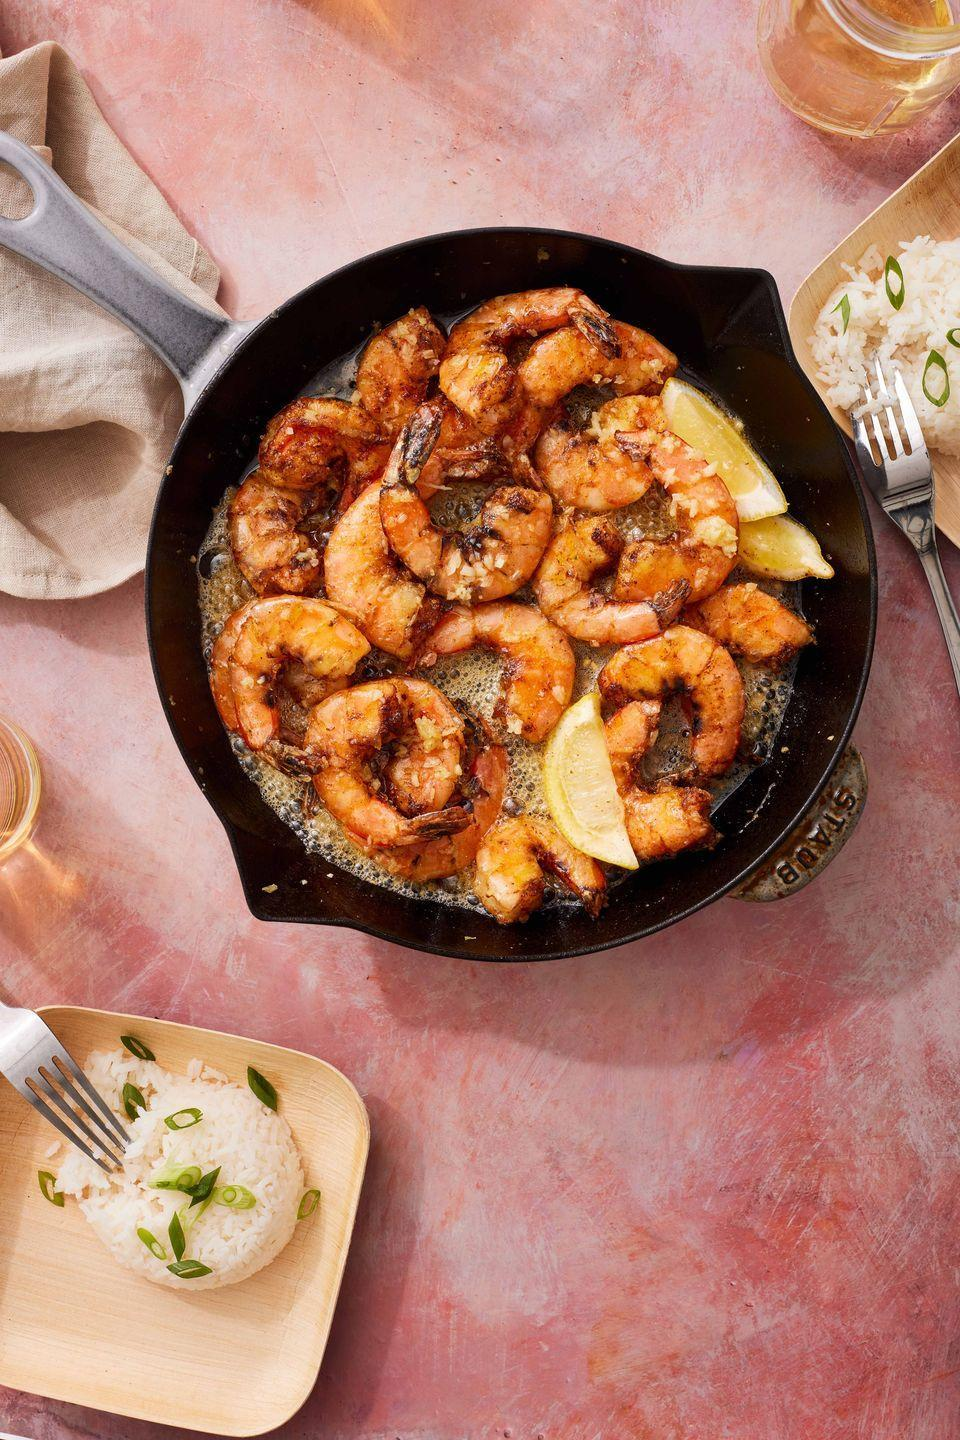 """<p>Tossing the shrimp in rice flour helps them take on a delicately crunchy texture, but all-purpose flour will work in a pinch.</p><p>Get the recipe from <a href=""""https://www.delish.com/cooking/recipe-ideas/a37418587/hawaiian-garlic-shrimp-recipe/"""" rel=""""nofollow noopener"""" target=""""_blank"""" data-ylk=""""slk:Delish"""" class=""""link rapid-noclick-resp"""">Delish</a>.</p>"""